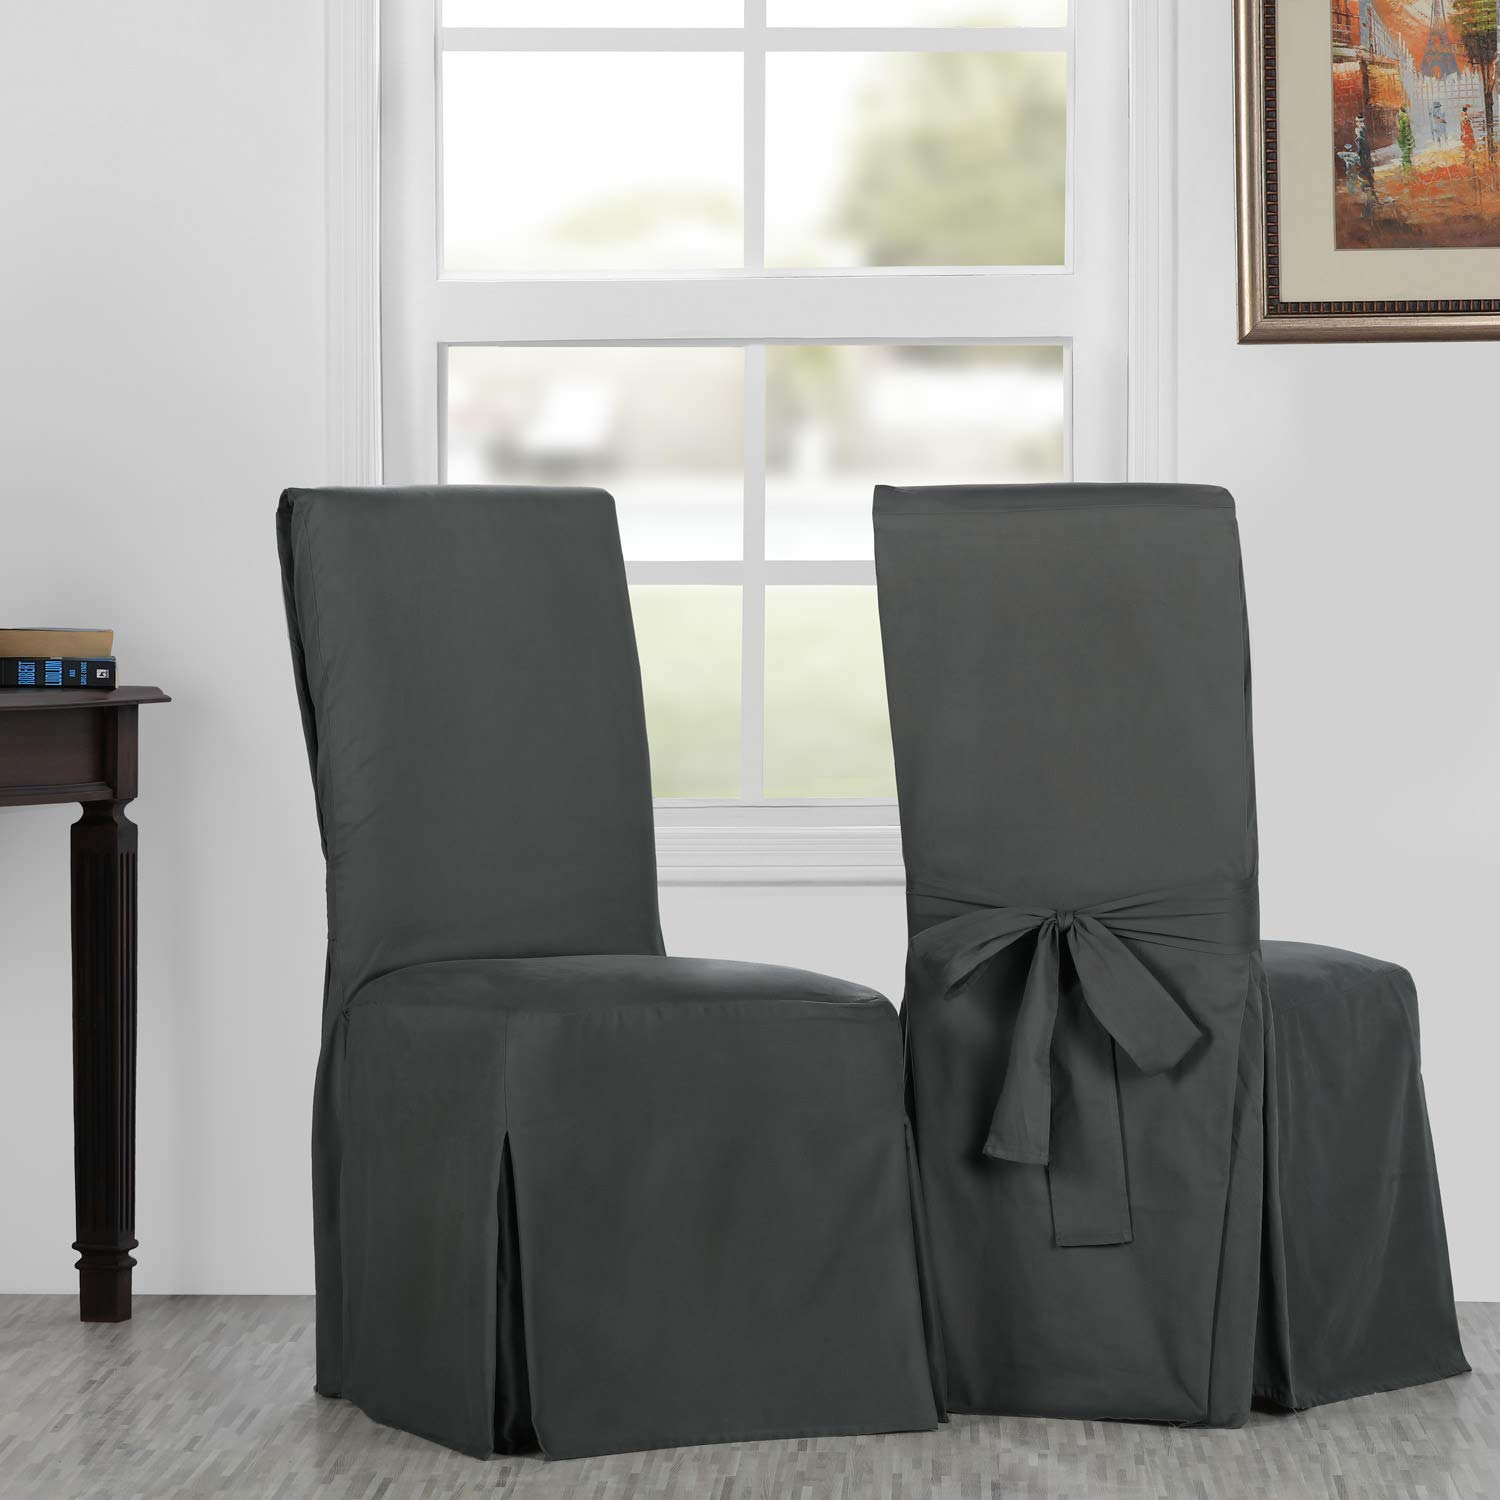 HPD Half Price Drapes PRCT-LS04-CC-L-PR Solid Cotton Twill Chair Covers (Sold As Pair), Millstone Gray